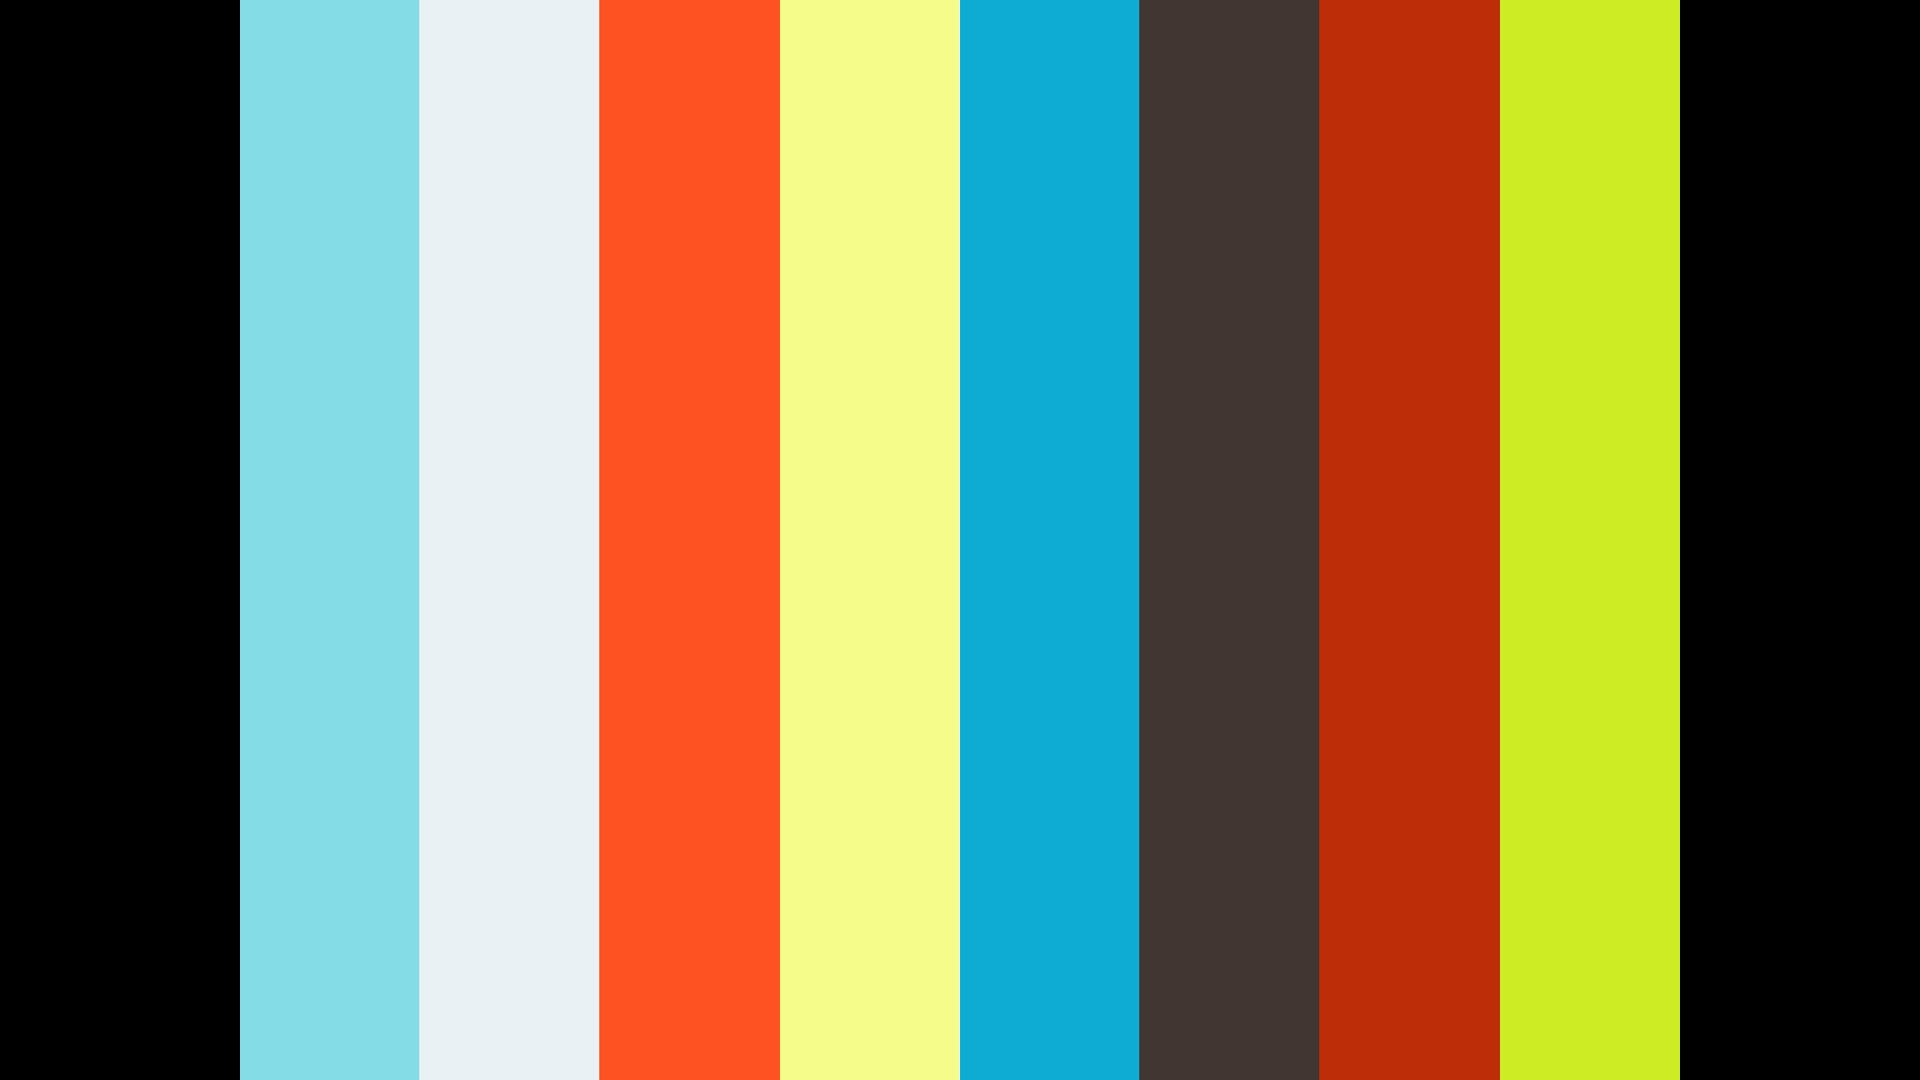 NYC Ballet Intensive Summer Performance 2013 - Untitled 1 - Joffrey Ballet School